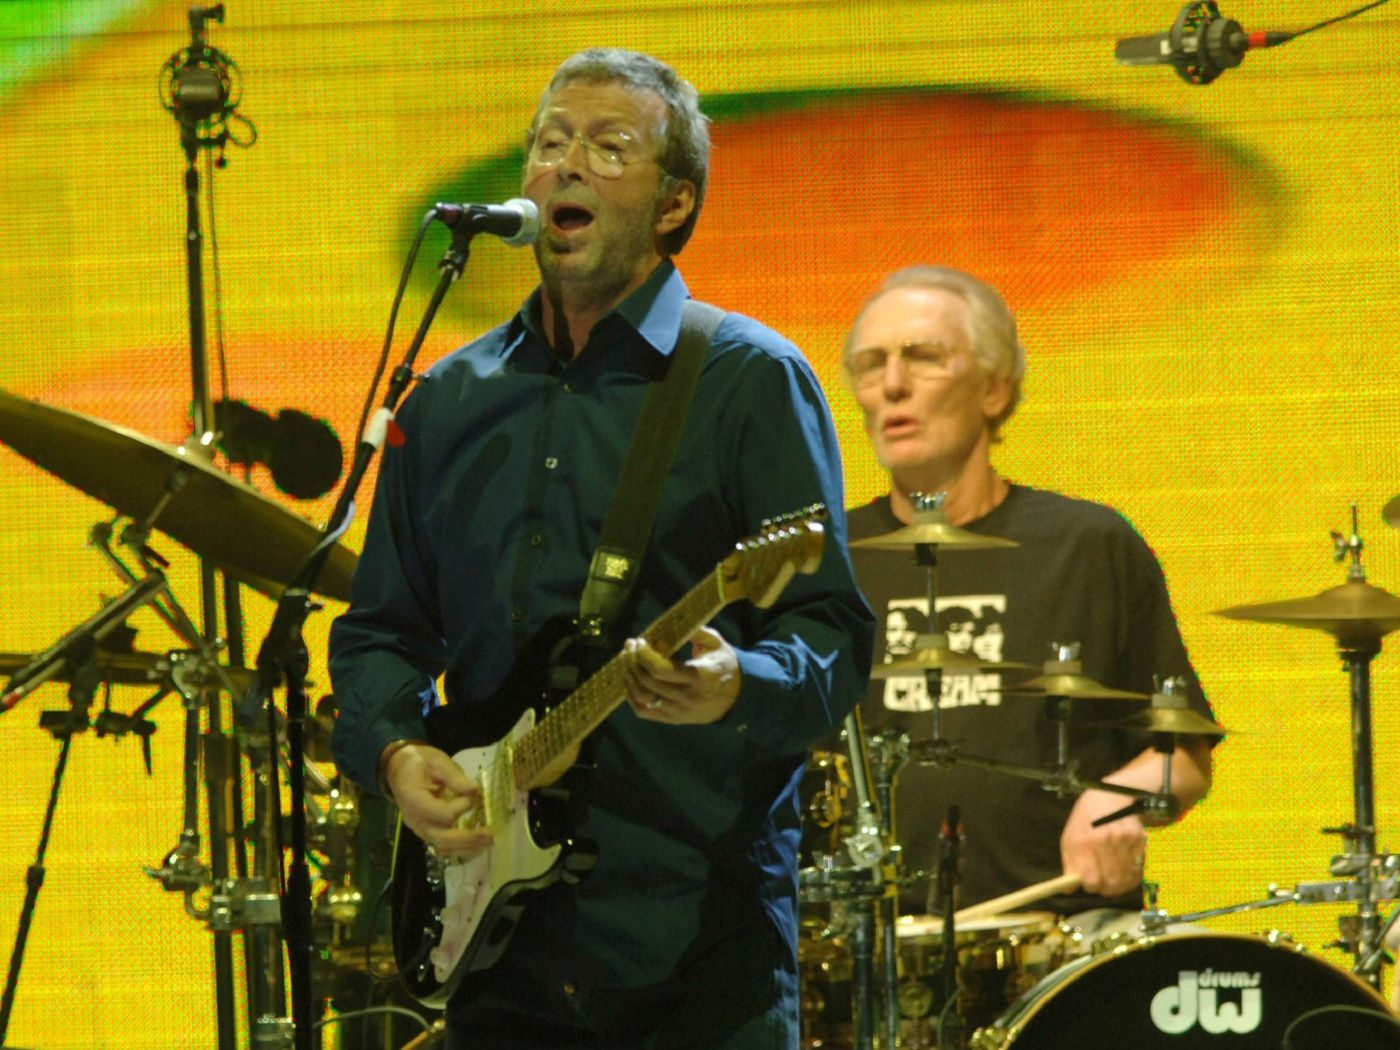 Eric Clapton and Ginger Baker performing with Cream